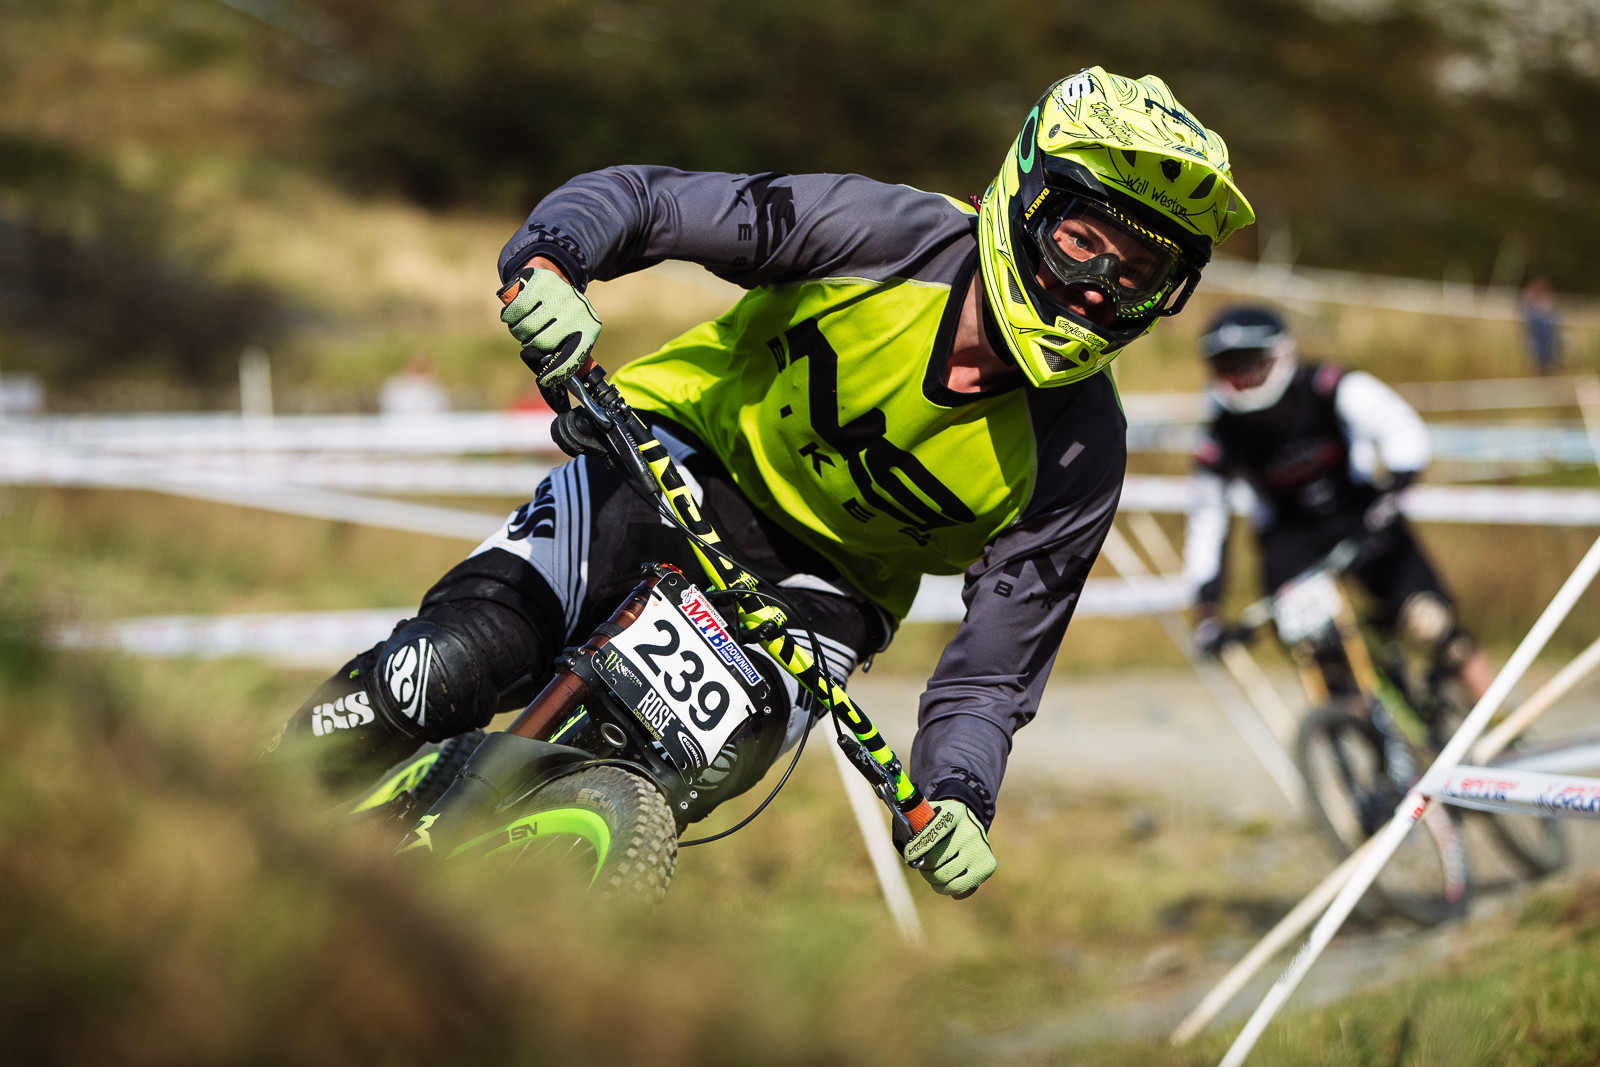 Will Weston, 2015 British Downhill Series Finals, Antur Stiniog - 2015 British Downhill Series Finals - Mountain Biking Pictures - Vital MTB